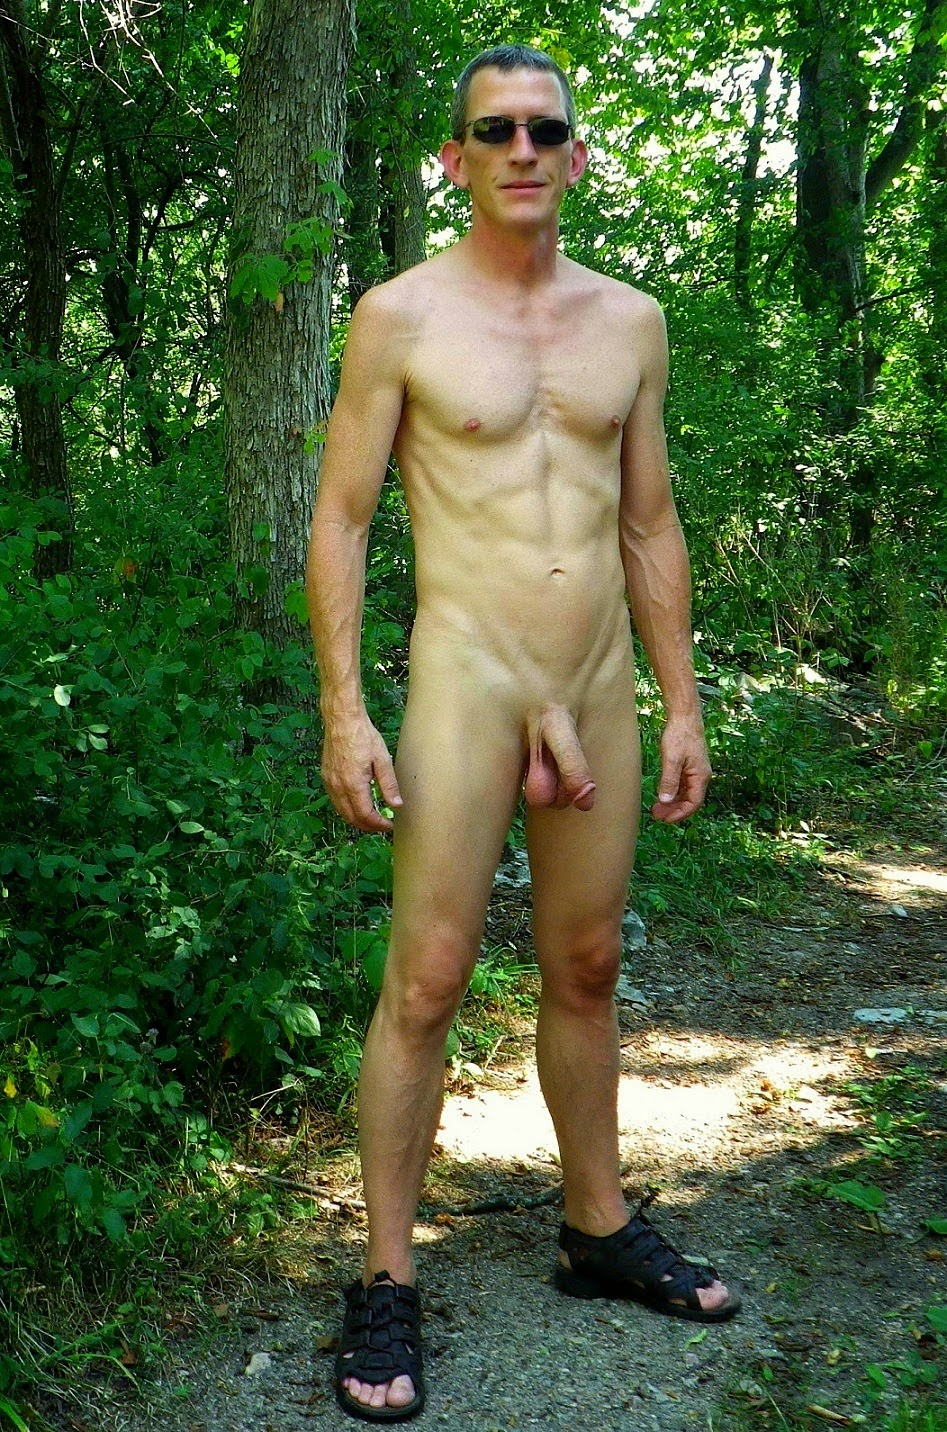 Naked Male Outdoor 19